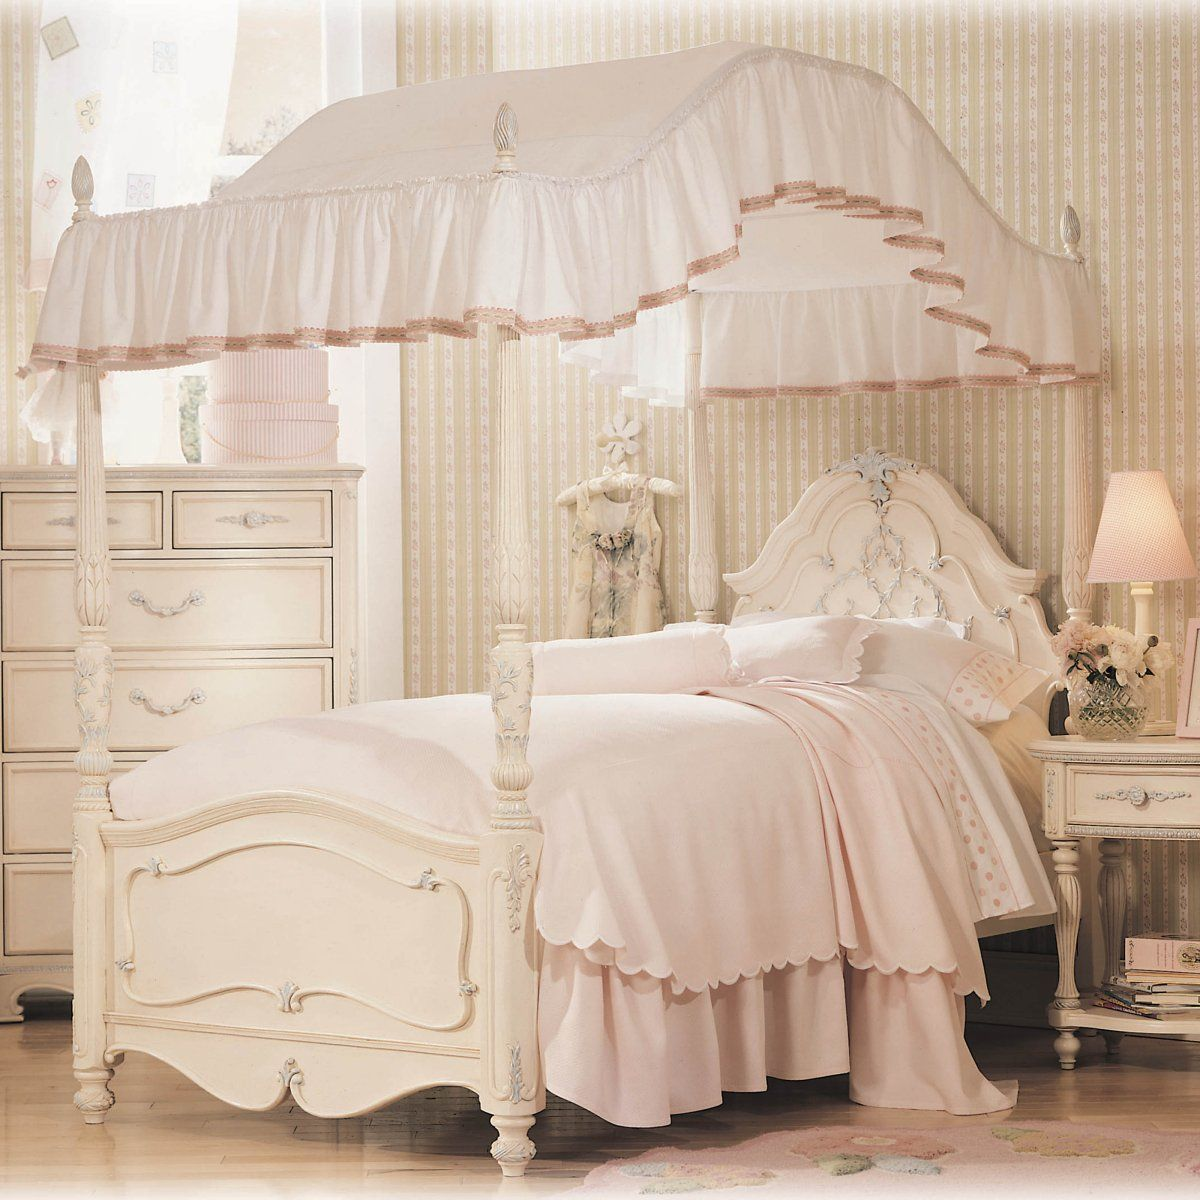 Romantic Canopy Bed Ideas bedroom: small beautiful pink canopy bed for girls, romantic